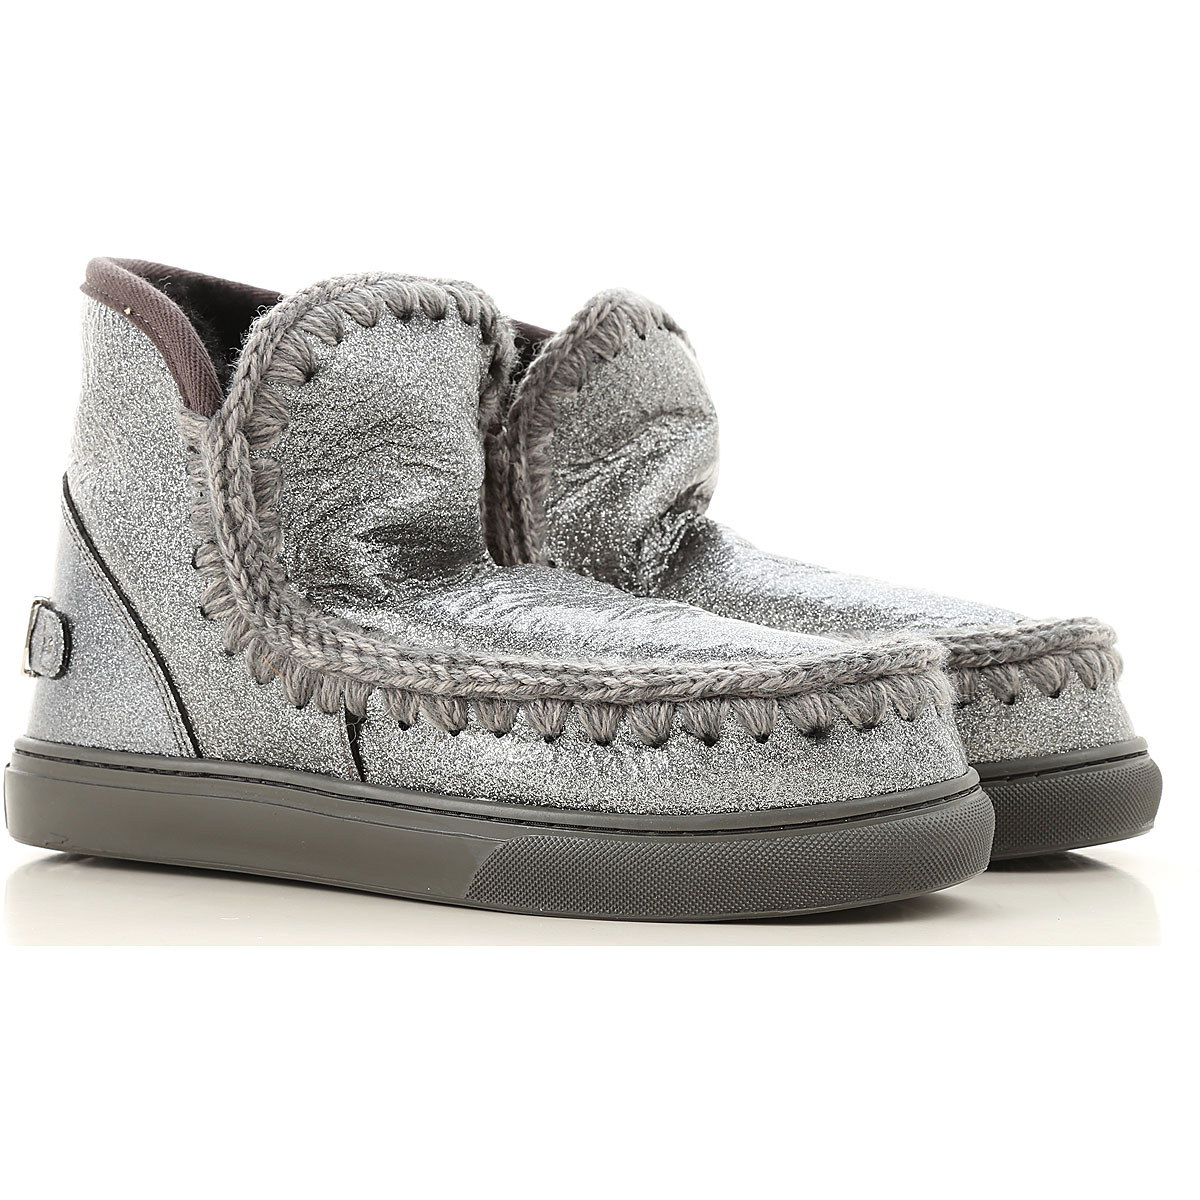 Mou Boots for Women, Booties On Sale, Silver, Leather, 2019, EUR 36 - UK 3 - USA 5.5 EUR 37 - UK 4 - USA 6.5 EUR 38 - UK 5 - USA 7.5 EUR 39 - UK 6 - U